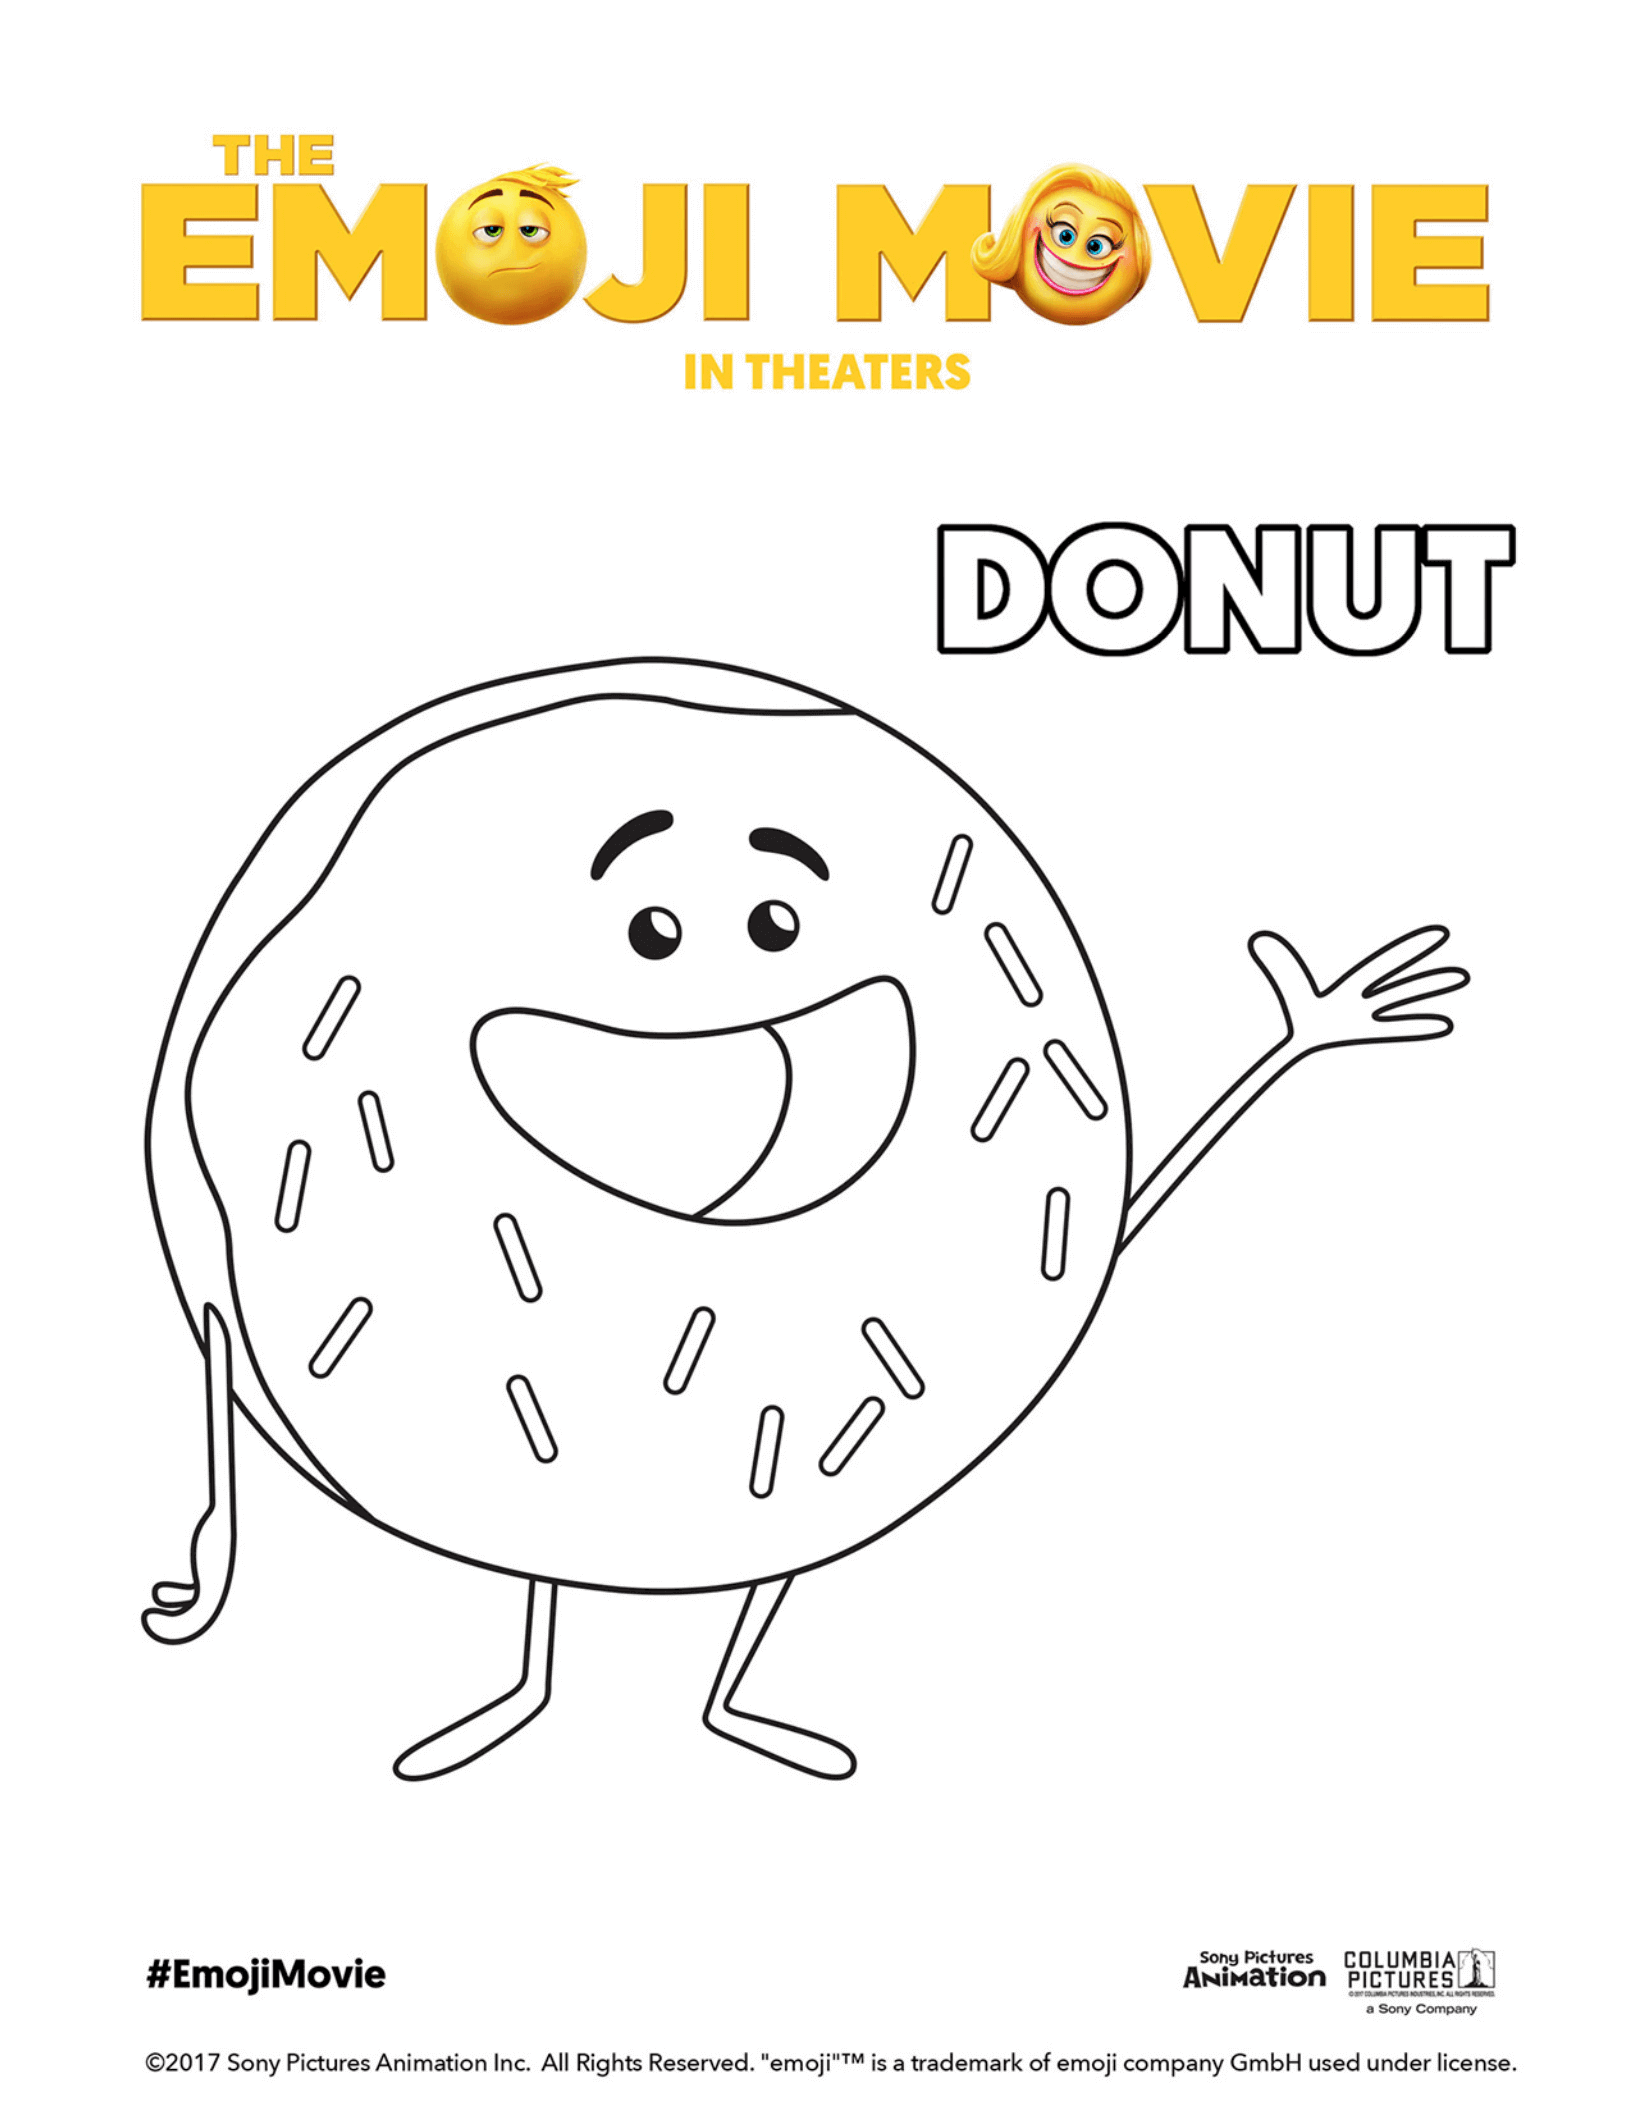 The Emoji Movie Donut Coloring Page Emoji Coloring Pages Emoji Movie Coloring Pages